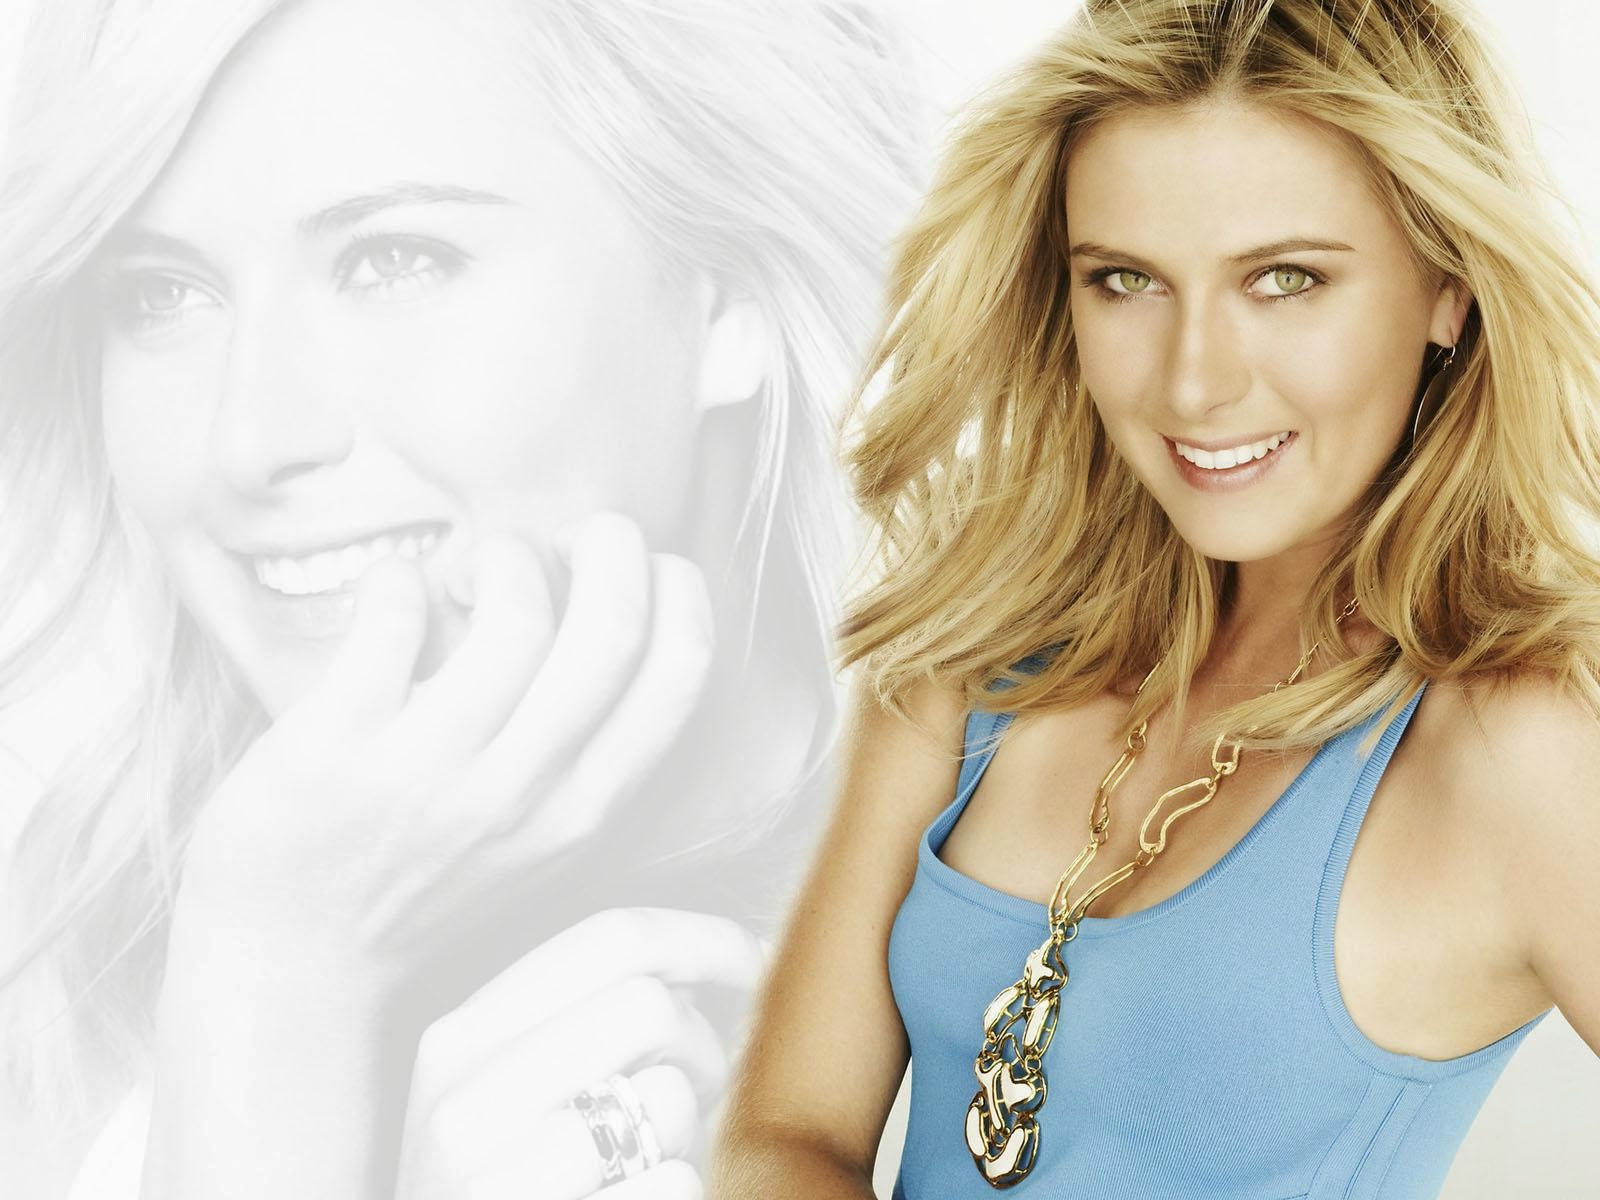 Maria Sharapova Hd Wallpapers Free Download